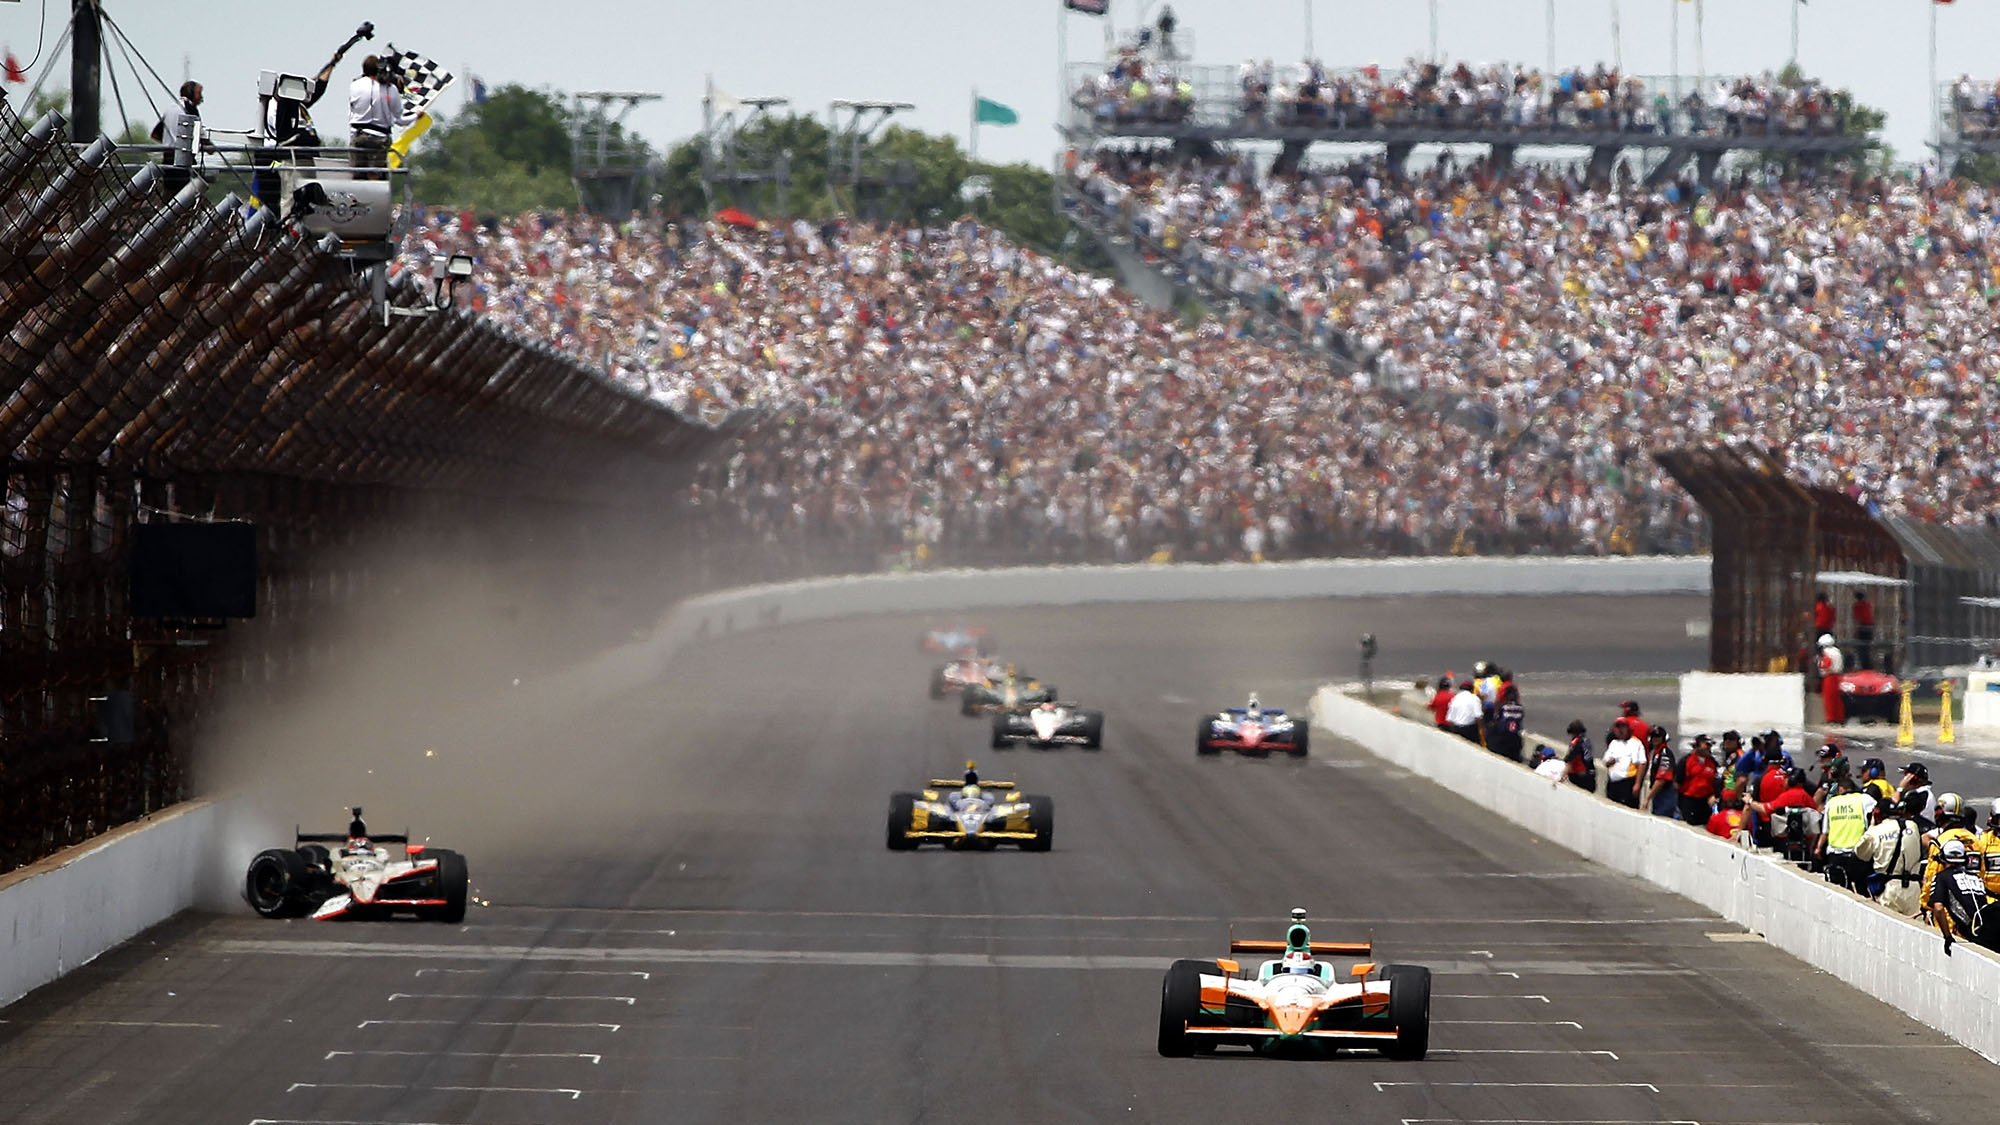 INDIANAPOLIS - MAY 29: Charlie Kimball (R), driver of the #83 Novo Nordisk Chip Ganassi Racing Dallara Honda, crosses the finish line during the IZOD IndyCar Series Indianapolis 500 Mile Race, as JR Hildebrand (left), driver of the #4 National Guard Panther Racing, finishes second after hitting the wall at Indianapolis Motor Speedway on May 29, 2011 in Indianapolis, Indiana. (Photo by Todd Warshaw/Getty Images)